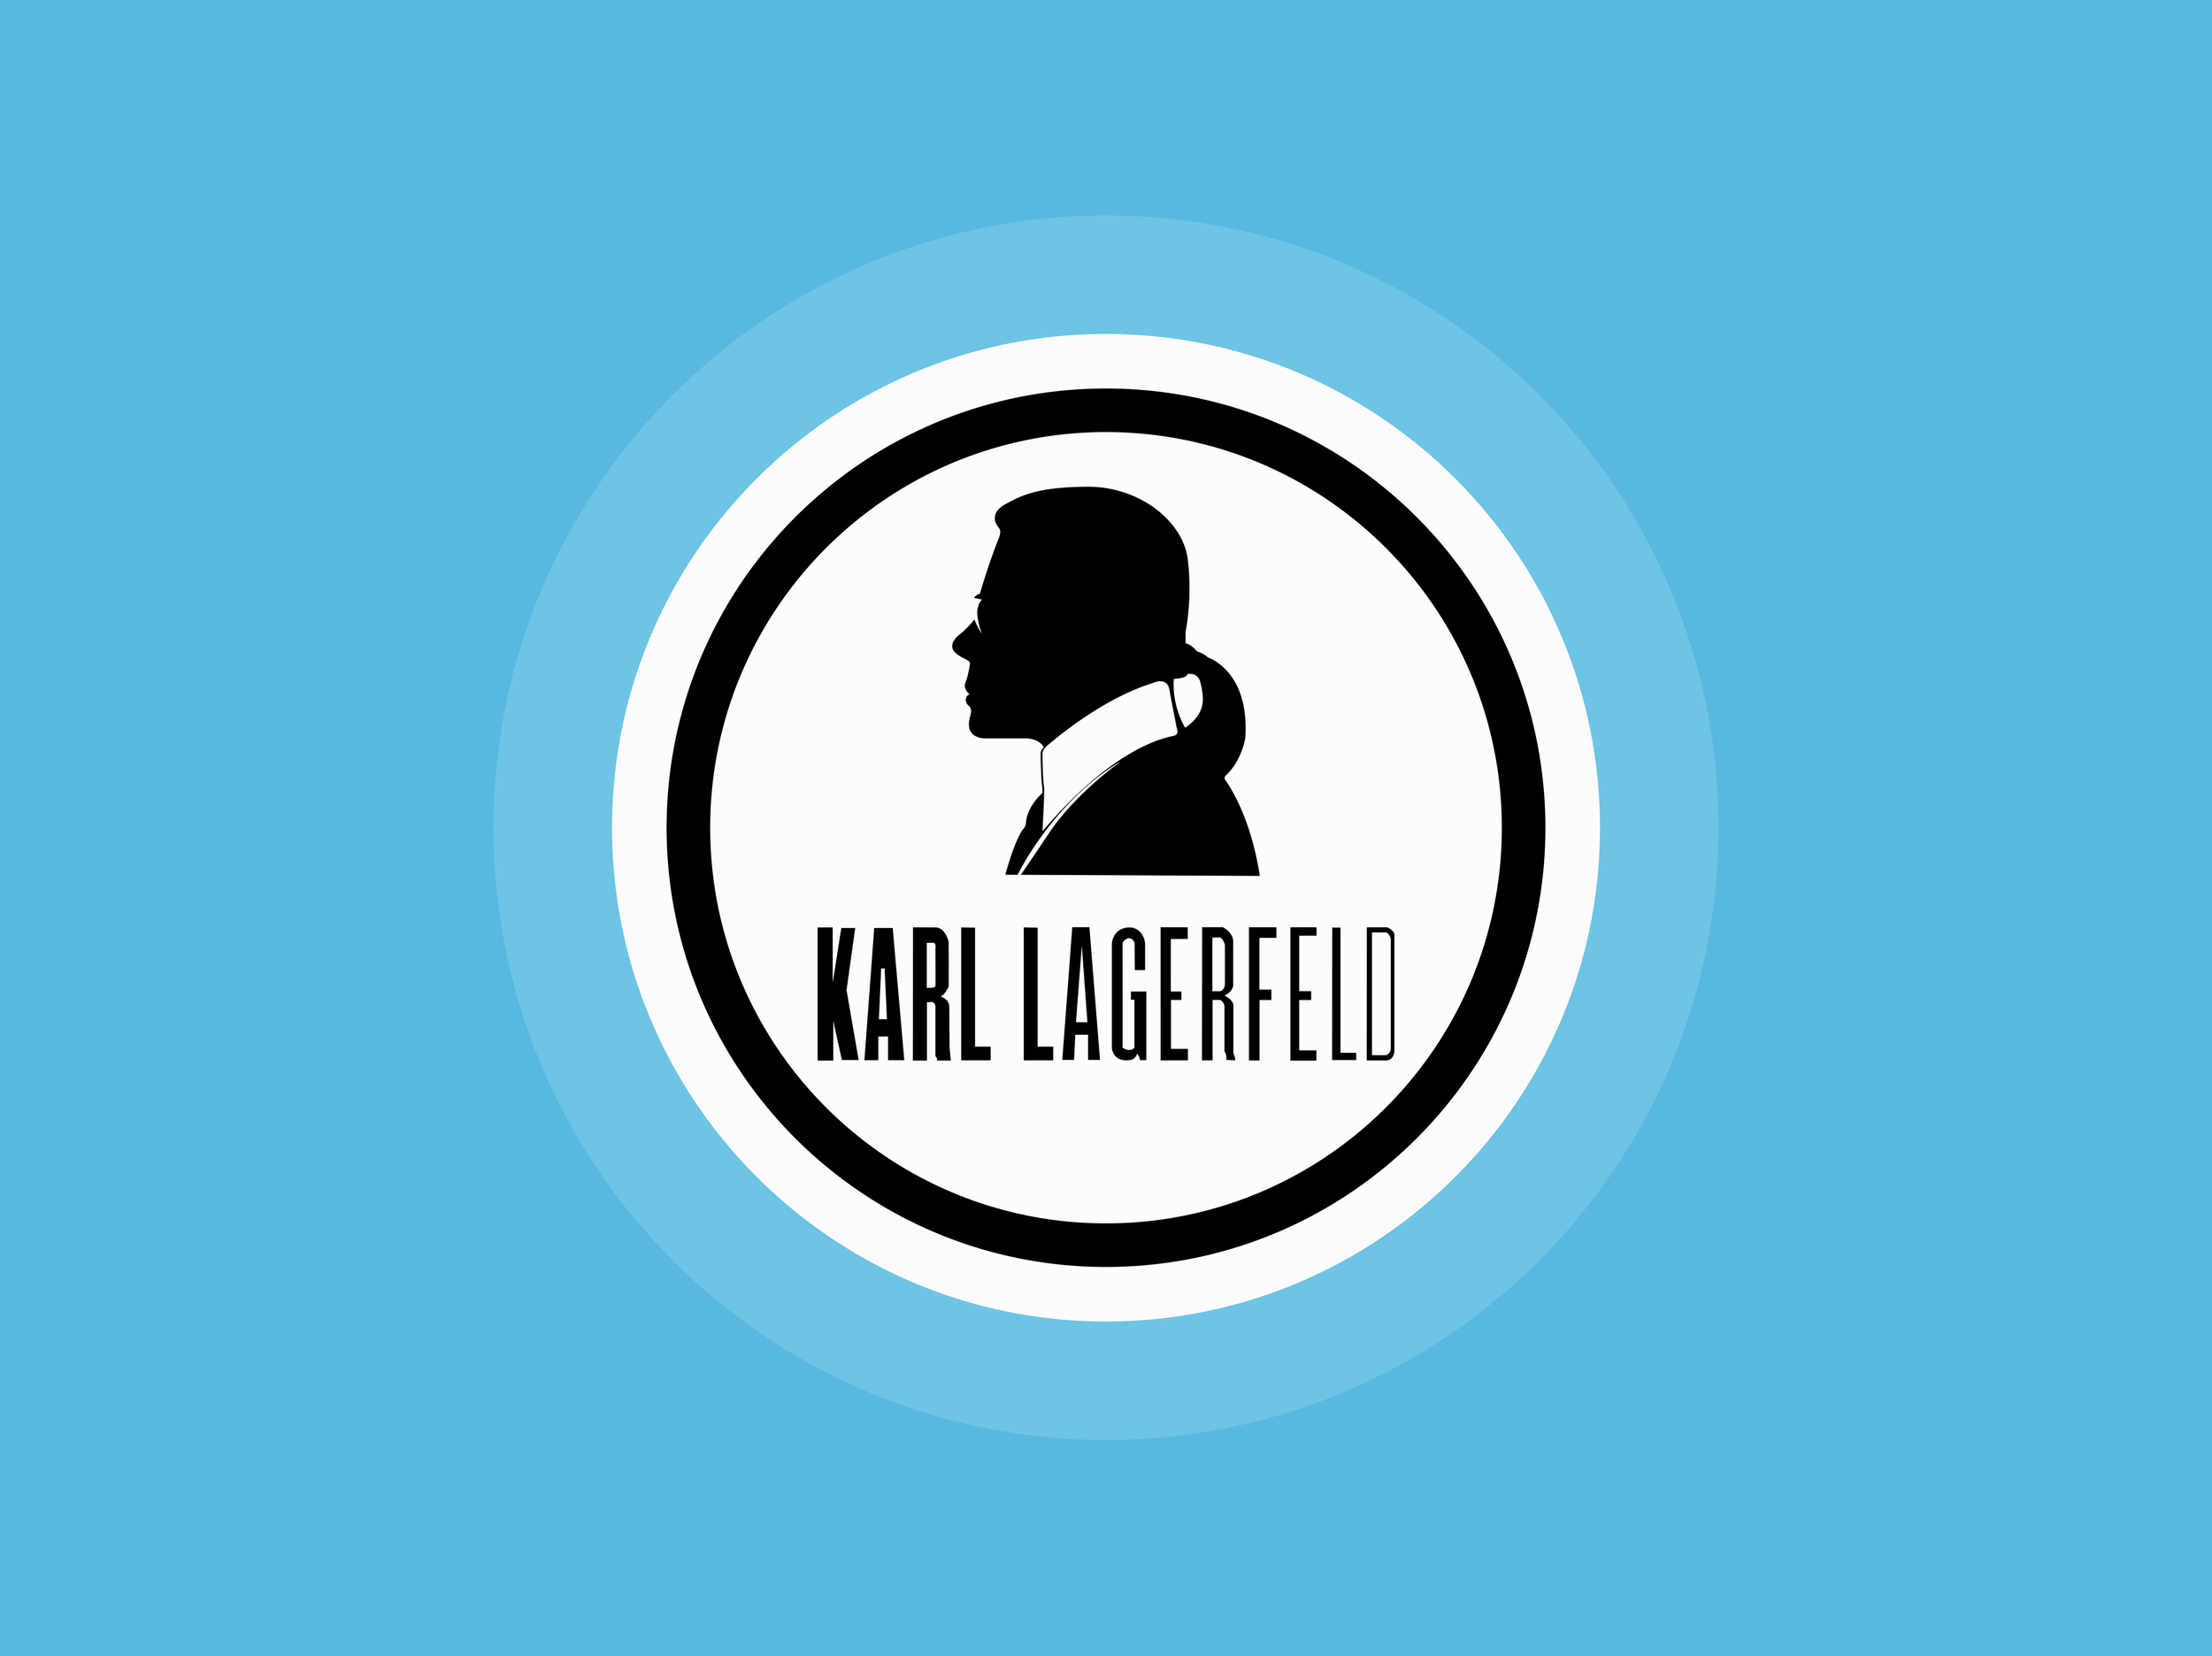 AOL Karl Lagerfeld.png